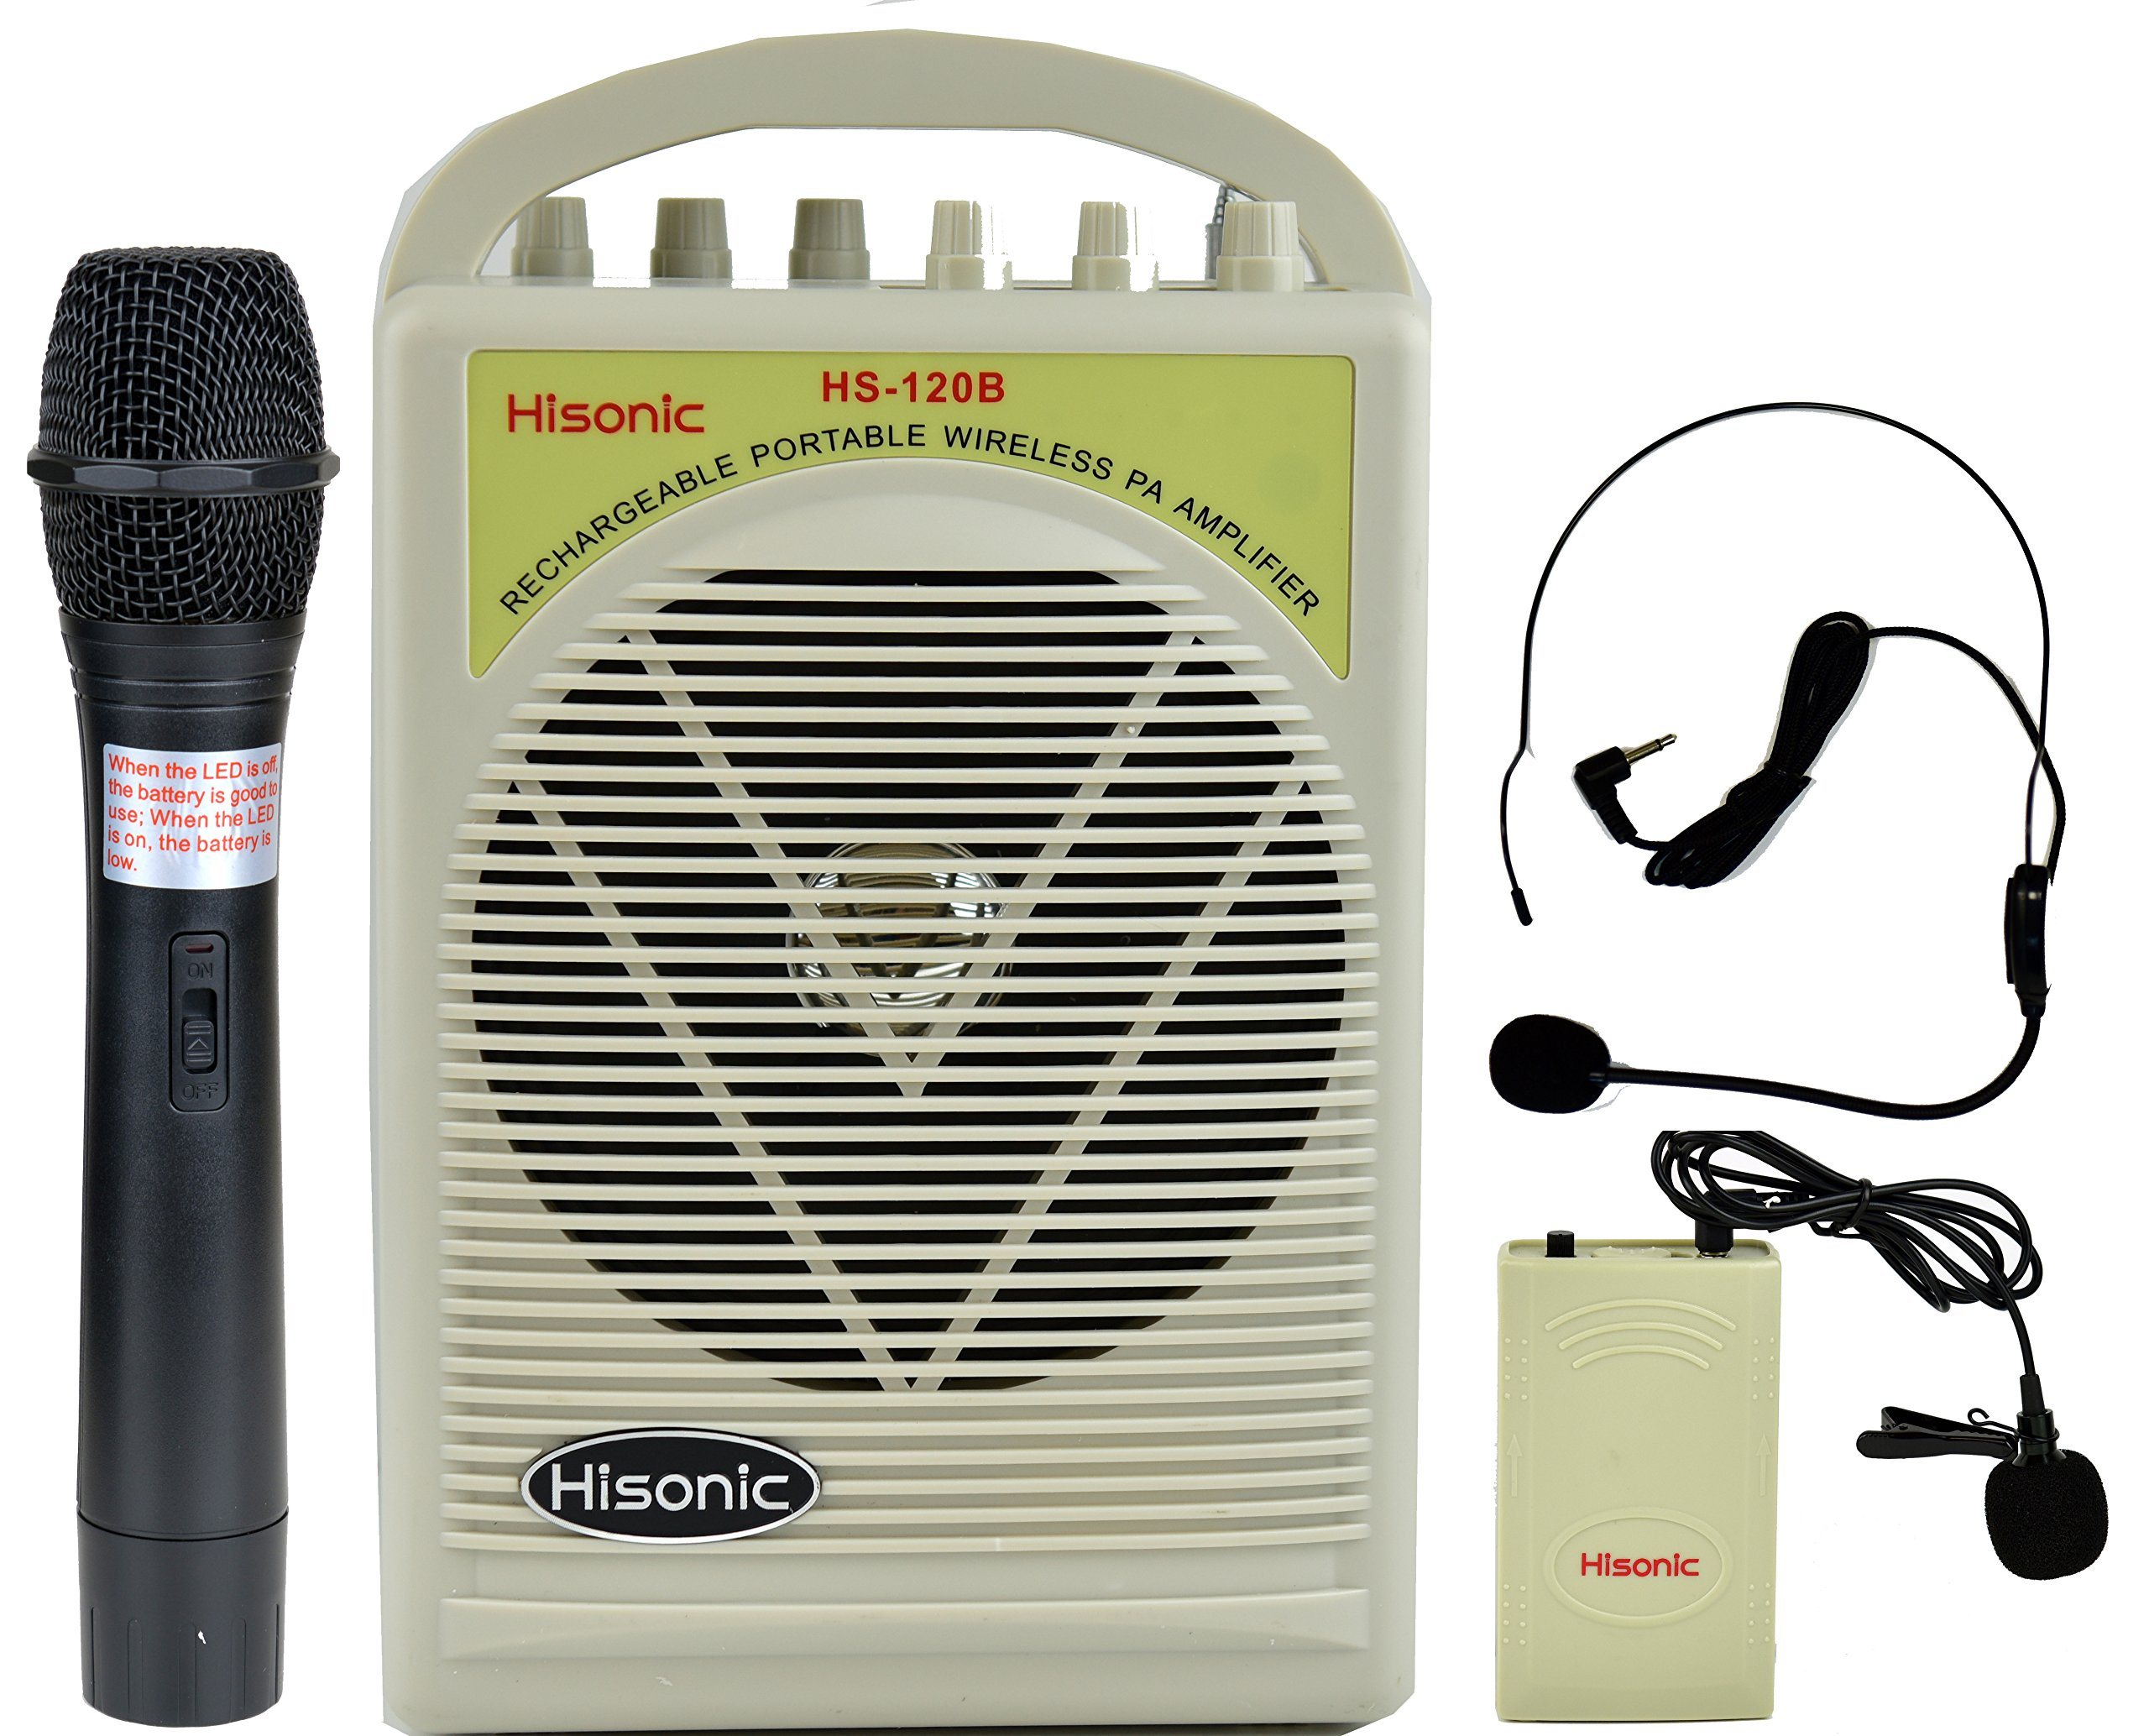 Hisonic HS120BW-HL Lithium Battery Rechargeable & Portable PA (Public Address) System with Built-in VHF Wireless Microphone and Car Cigarette Lighter Cable